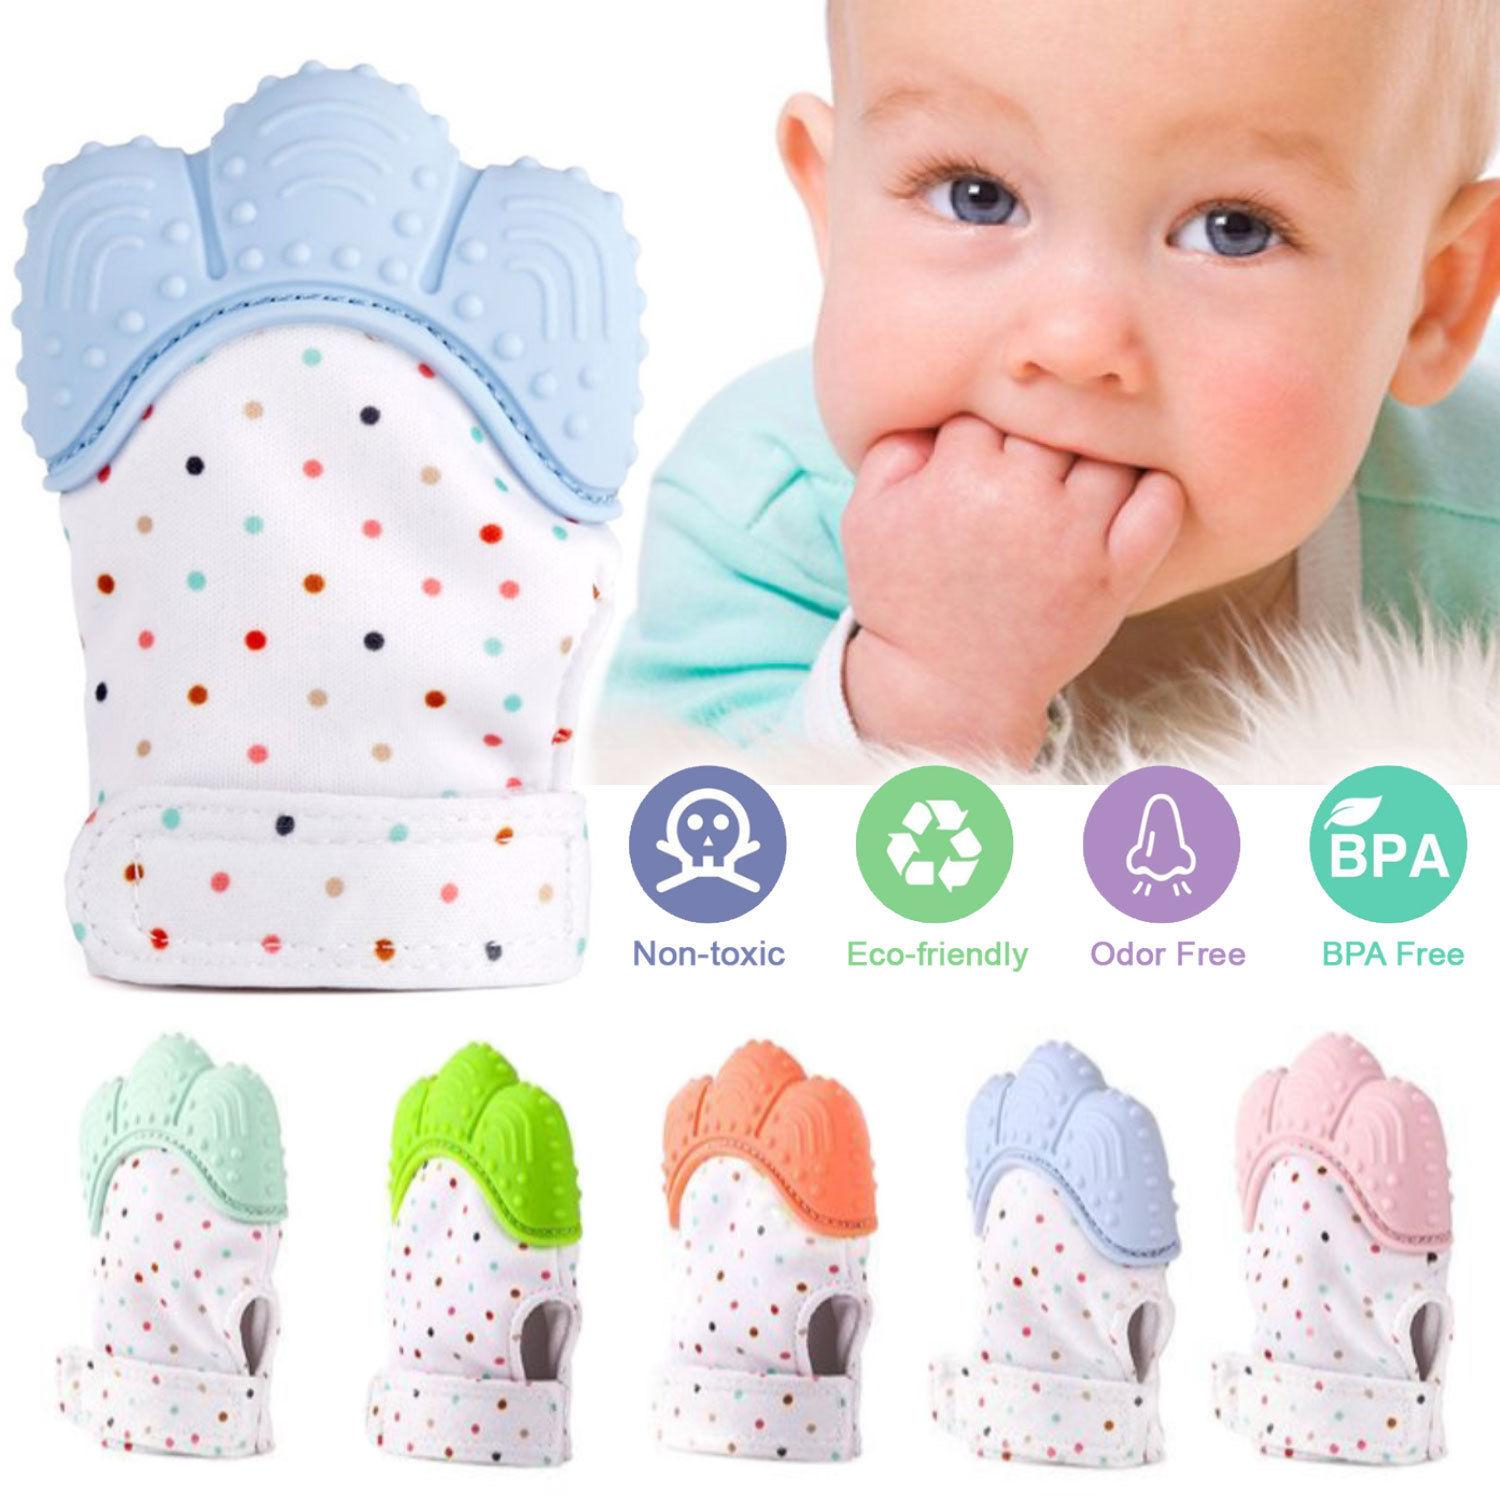 Baby Teething Mitten Silicon Teether